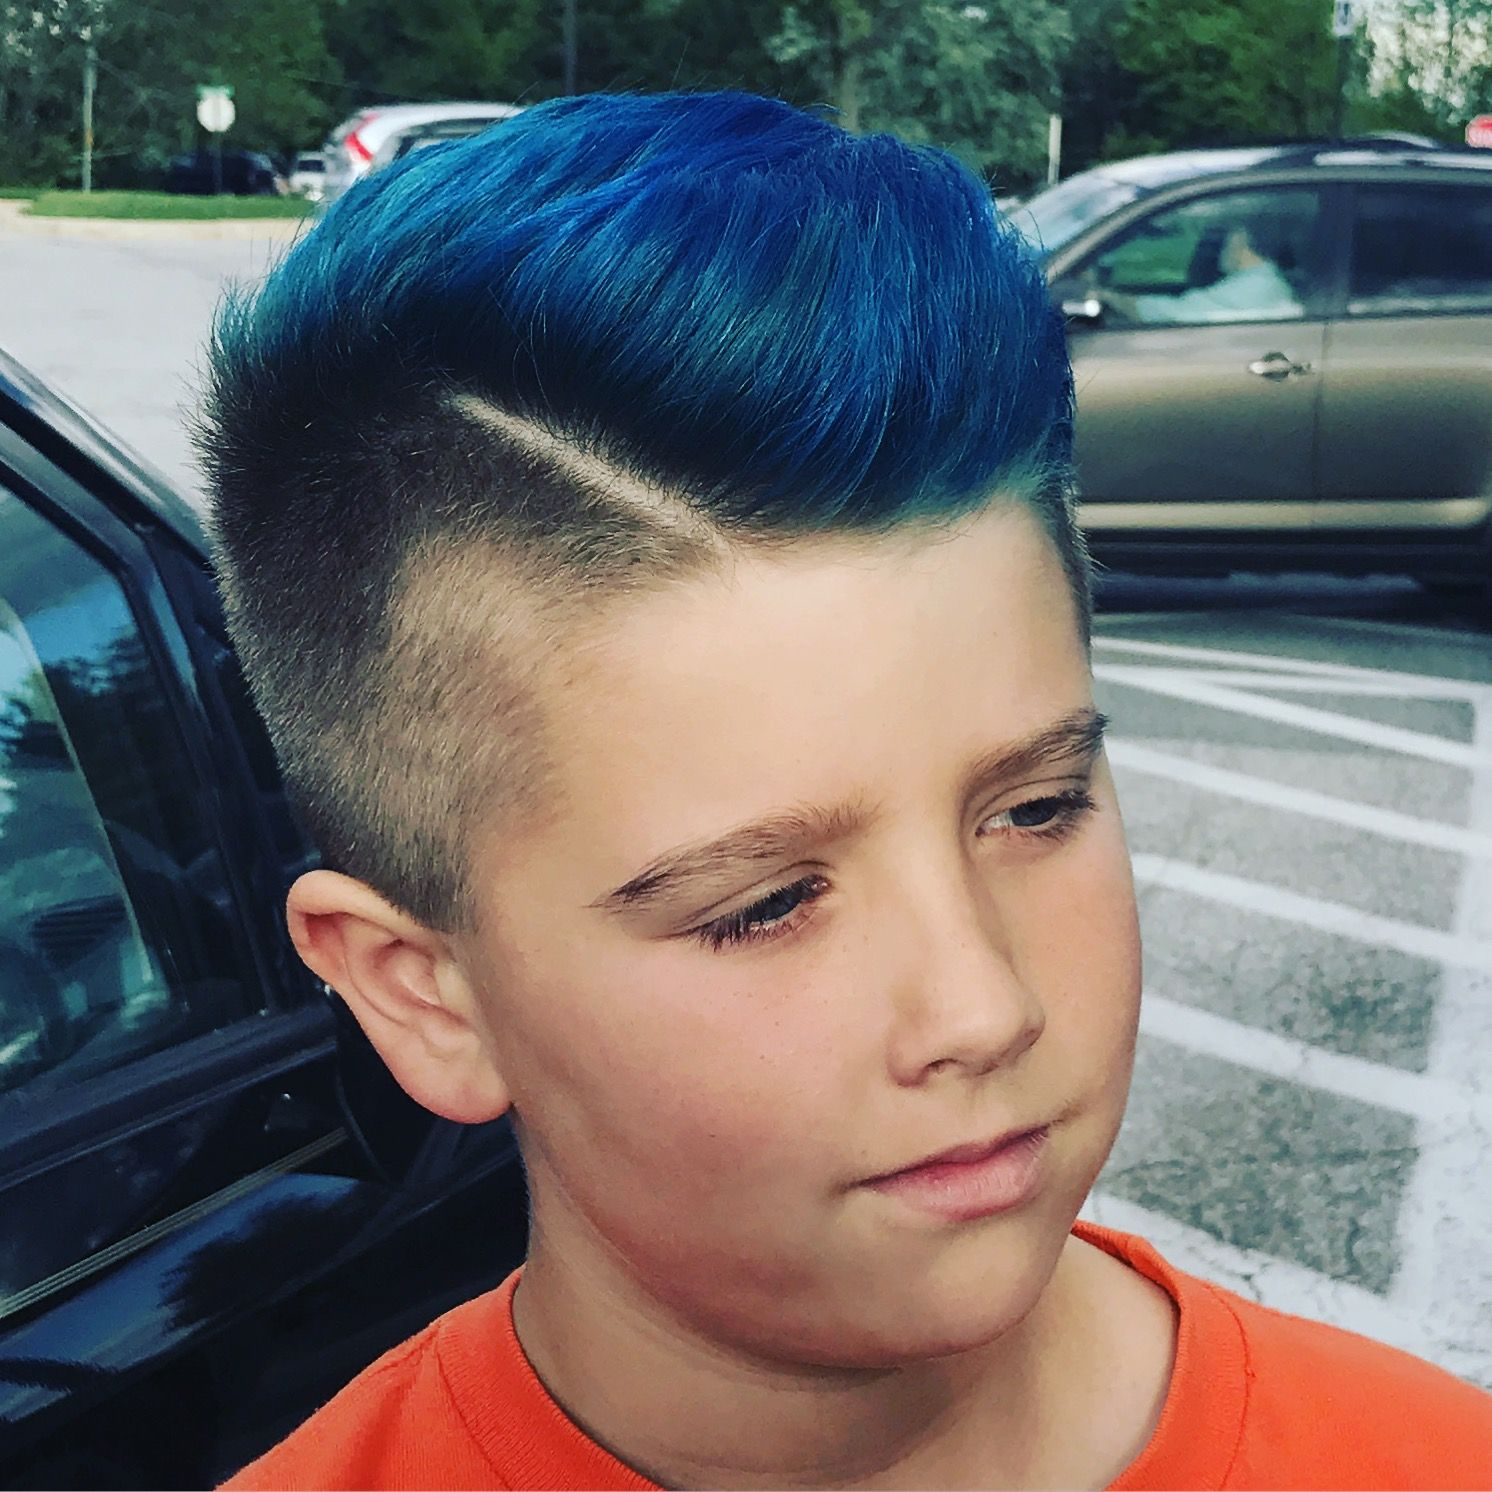 Boys Blue Hair Jmaries Salon Jmariessalon Hair Highlights Haircut Haircolor Goldwell Goldwellusa El Boys Blue Hair Boys Colored Hair Kids Hair Color